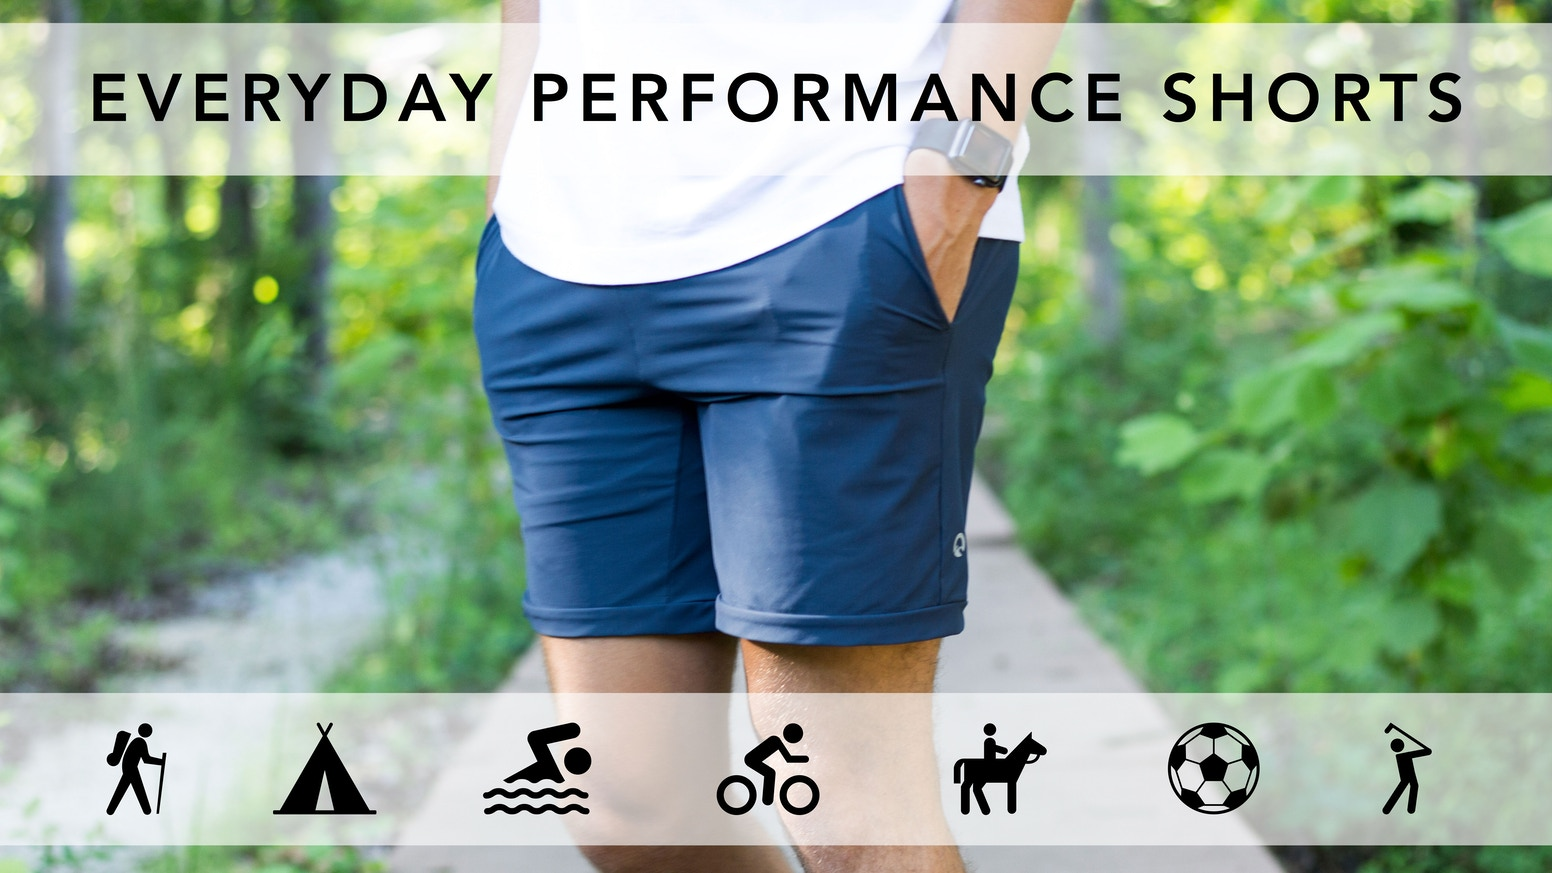 Meet our everyday performance shorts. We've created a refined and functional short, designed for a life in motion.